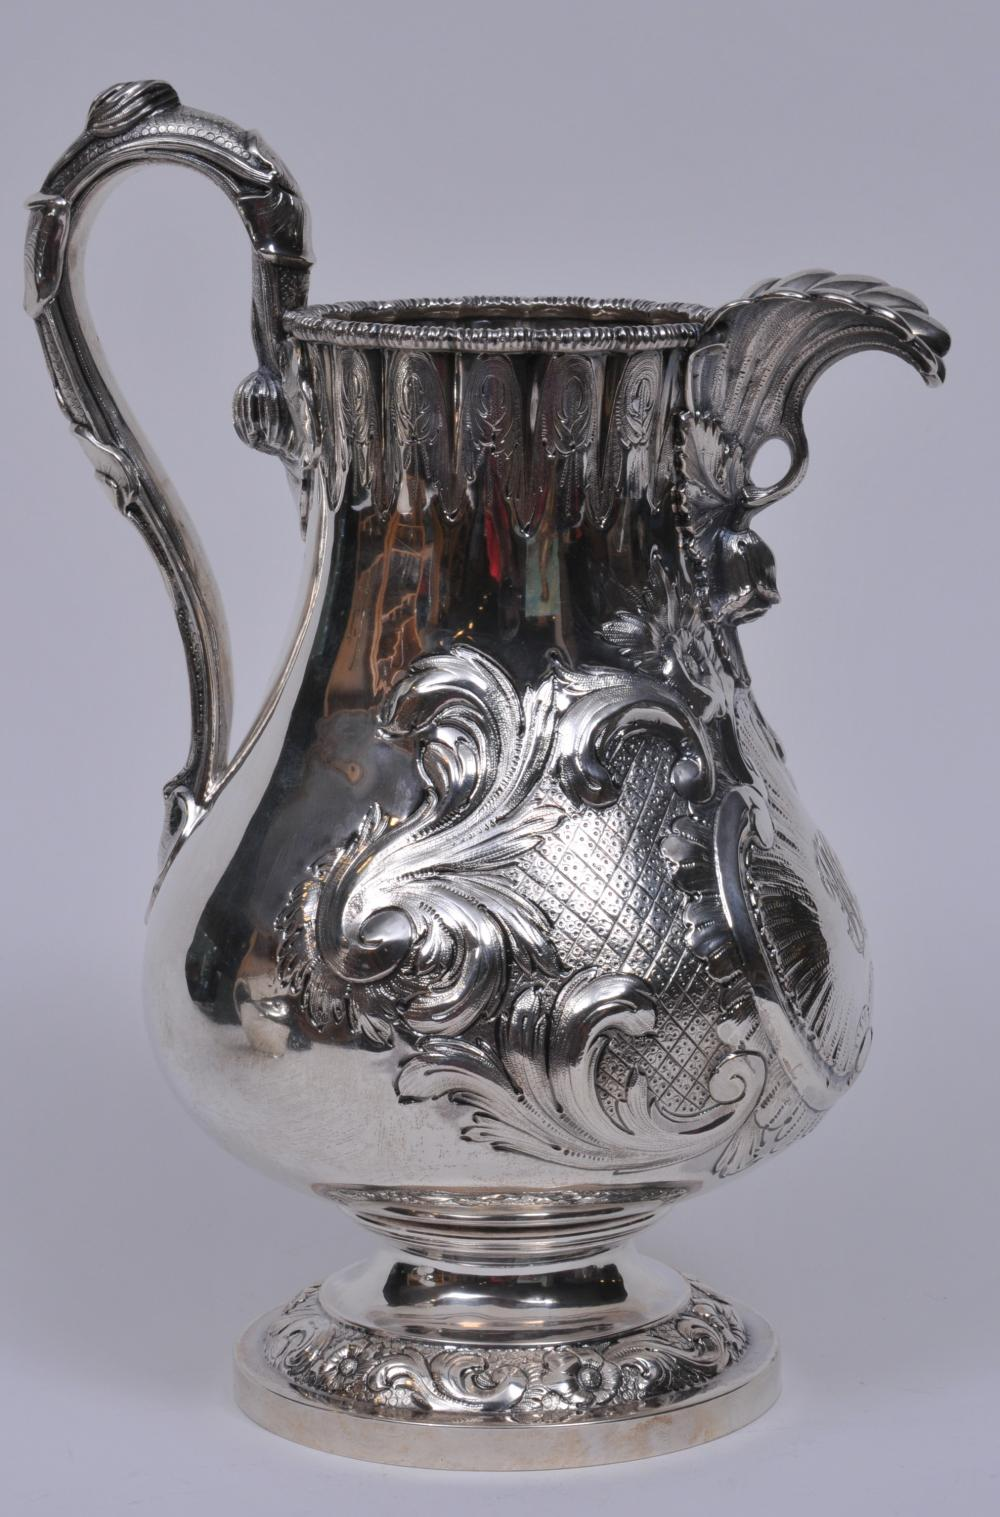 """Early Tiffany & Co. makers. Late """"Tiffany-Young-Ellis"""" large ornate water pitcher. Large acanthus leaf spout. Leaf and vine decorated handle. Leaf-quilted-cartouche decorated body. Monogrammed. Inscription on base rim. 12-1/2"""" high.  37.8 ozt. Good c"""